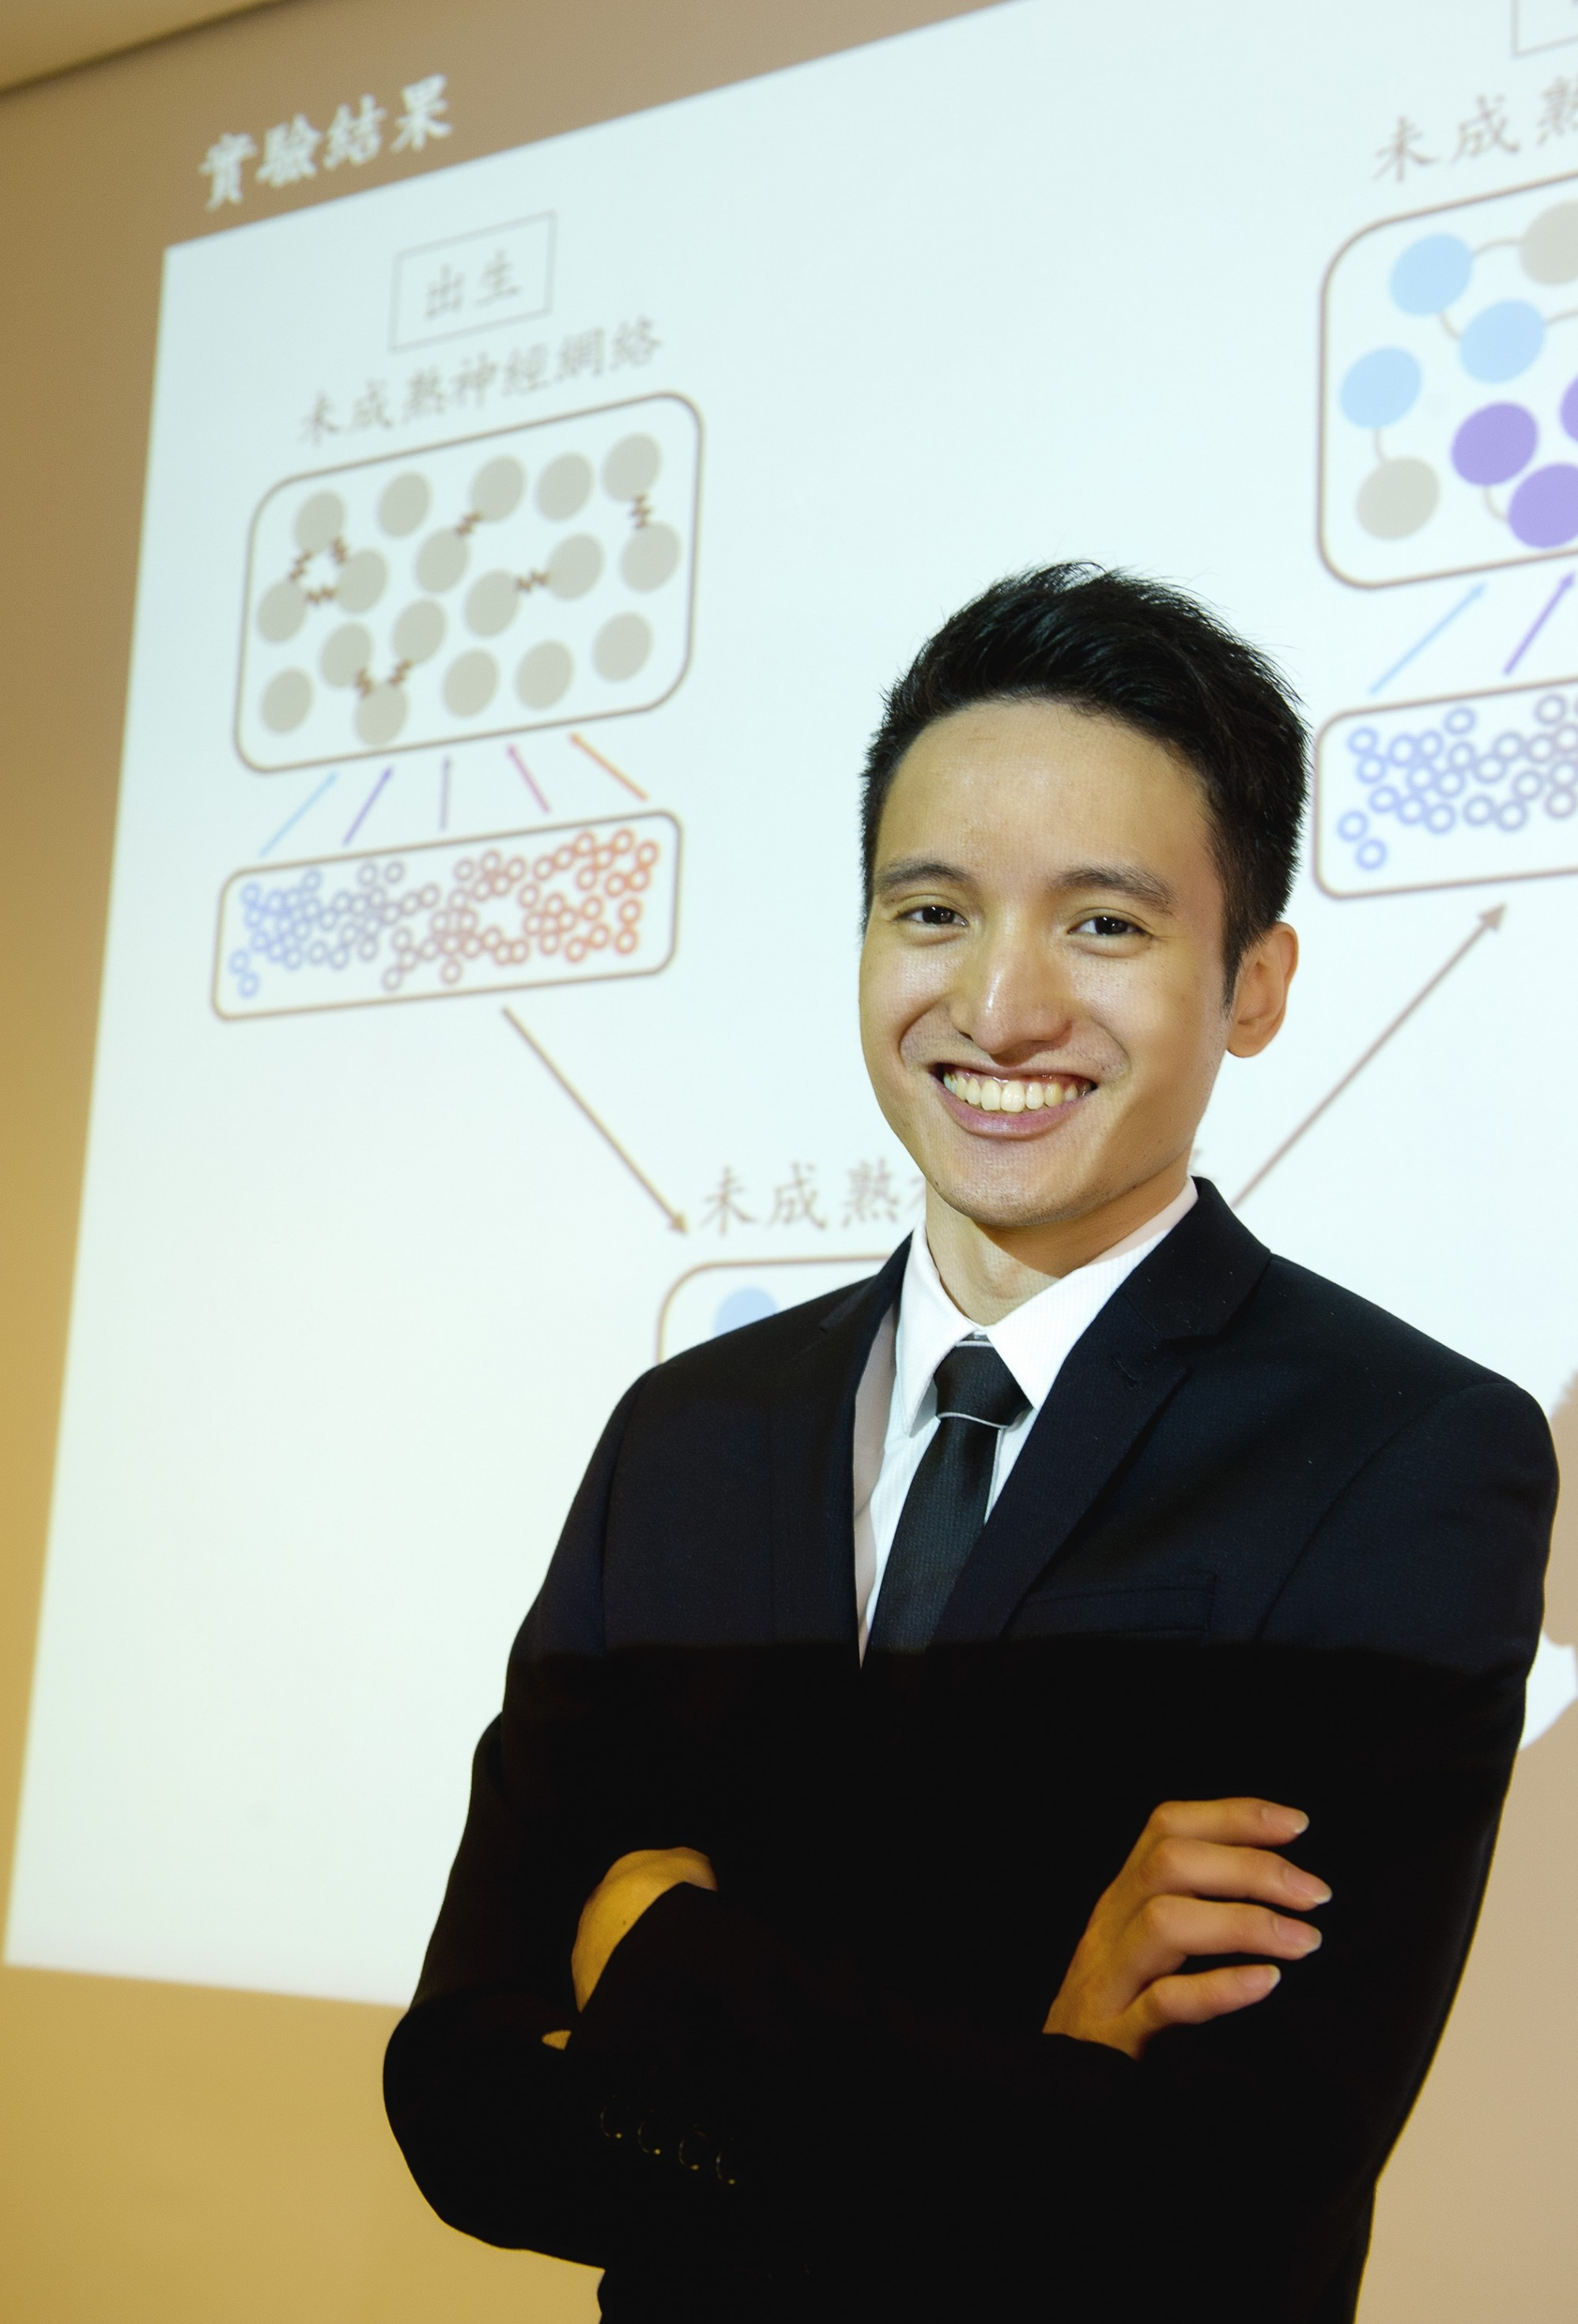 Dr. Owen KO Ho, MBChB Year 3 student, unraveled mystery of neuronal circuits development with his research findings recently published in prestigious scientific journal Nature (April 2013).